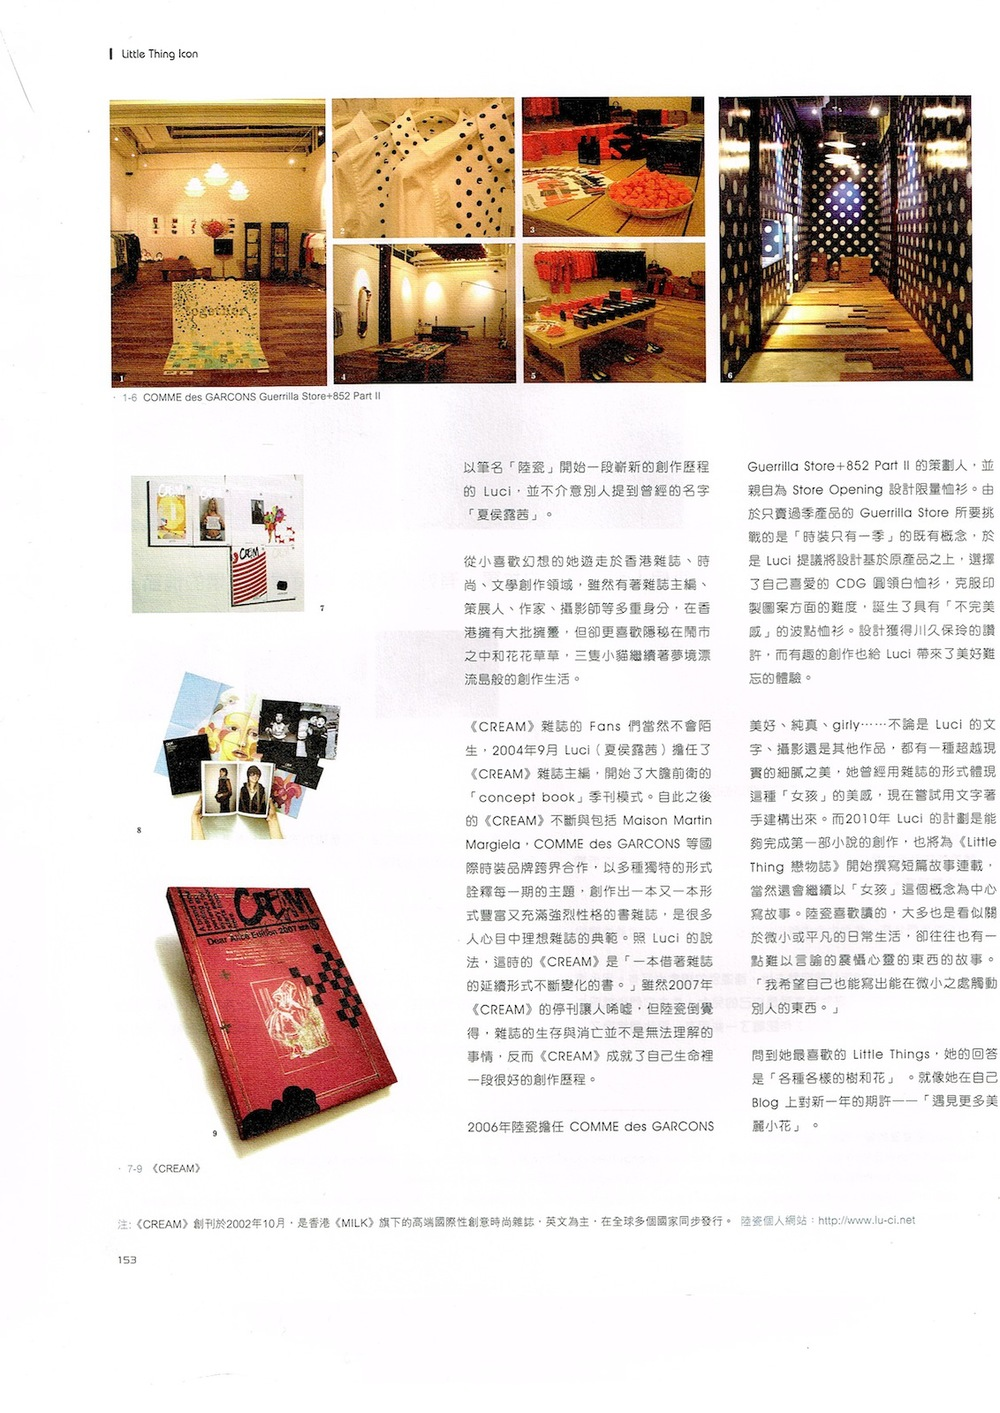 irene_leung_little_thing_interview_issue_10_page2.jpeg